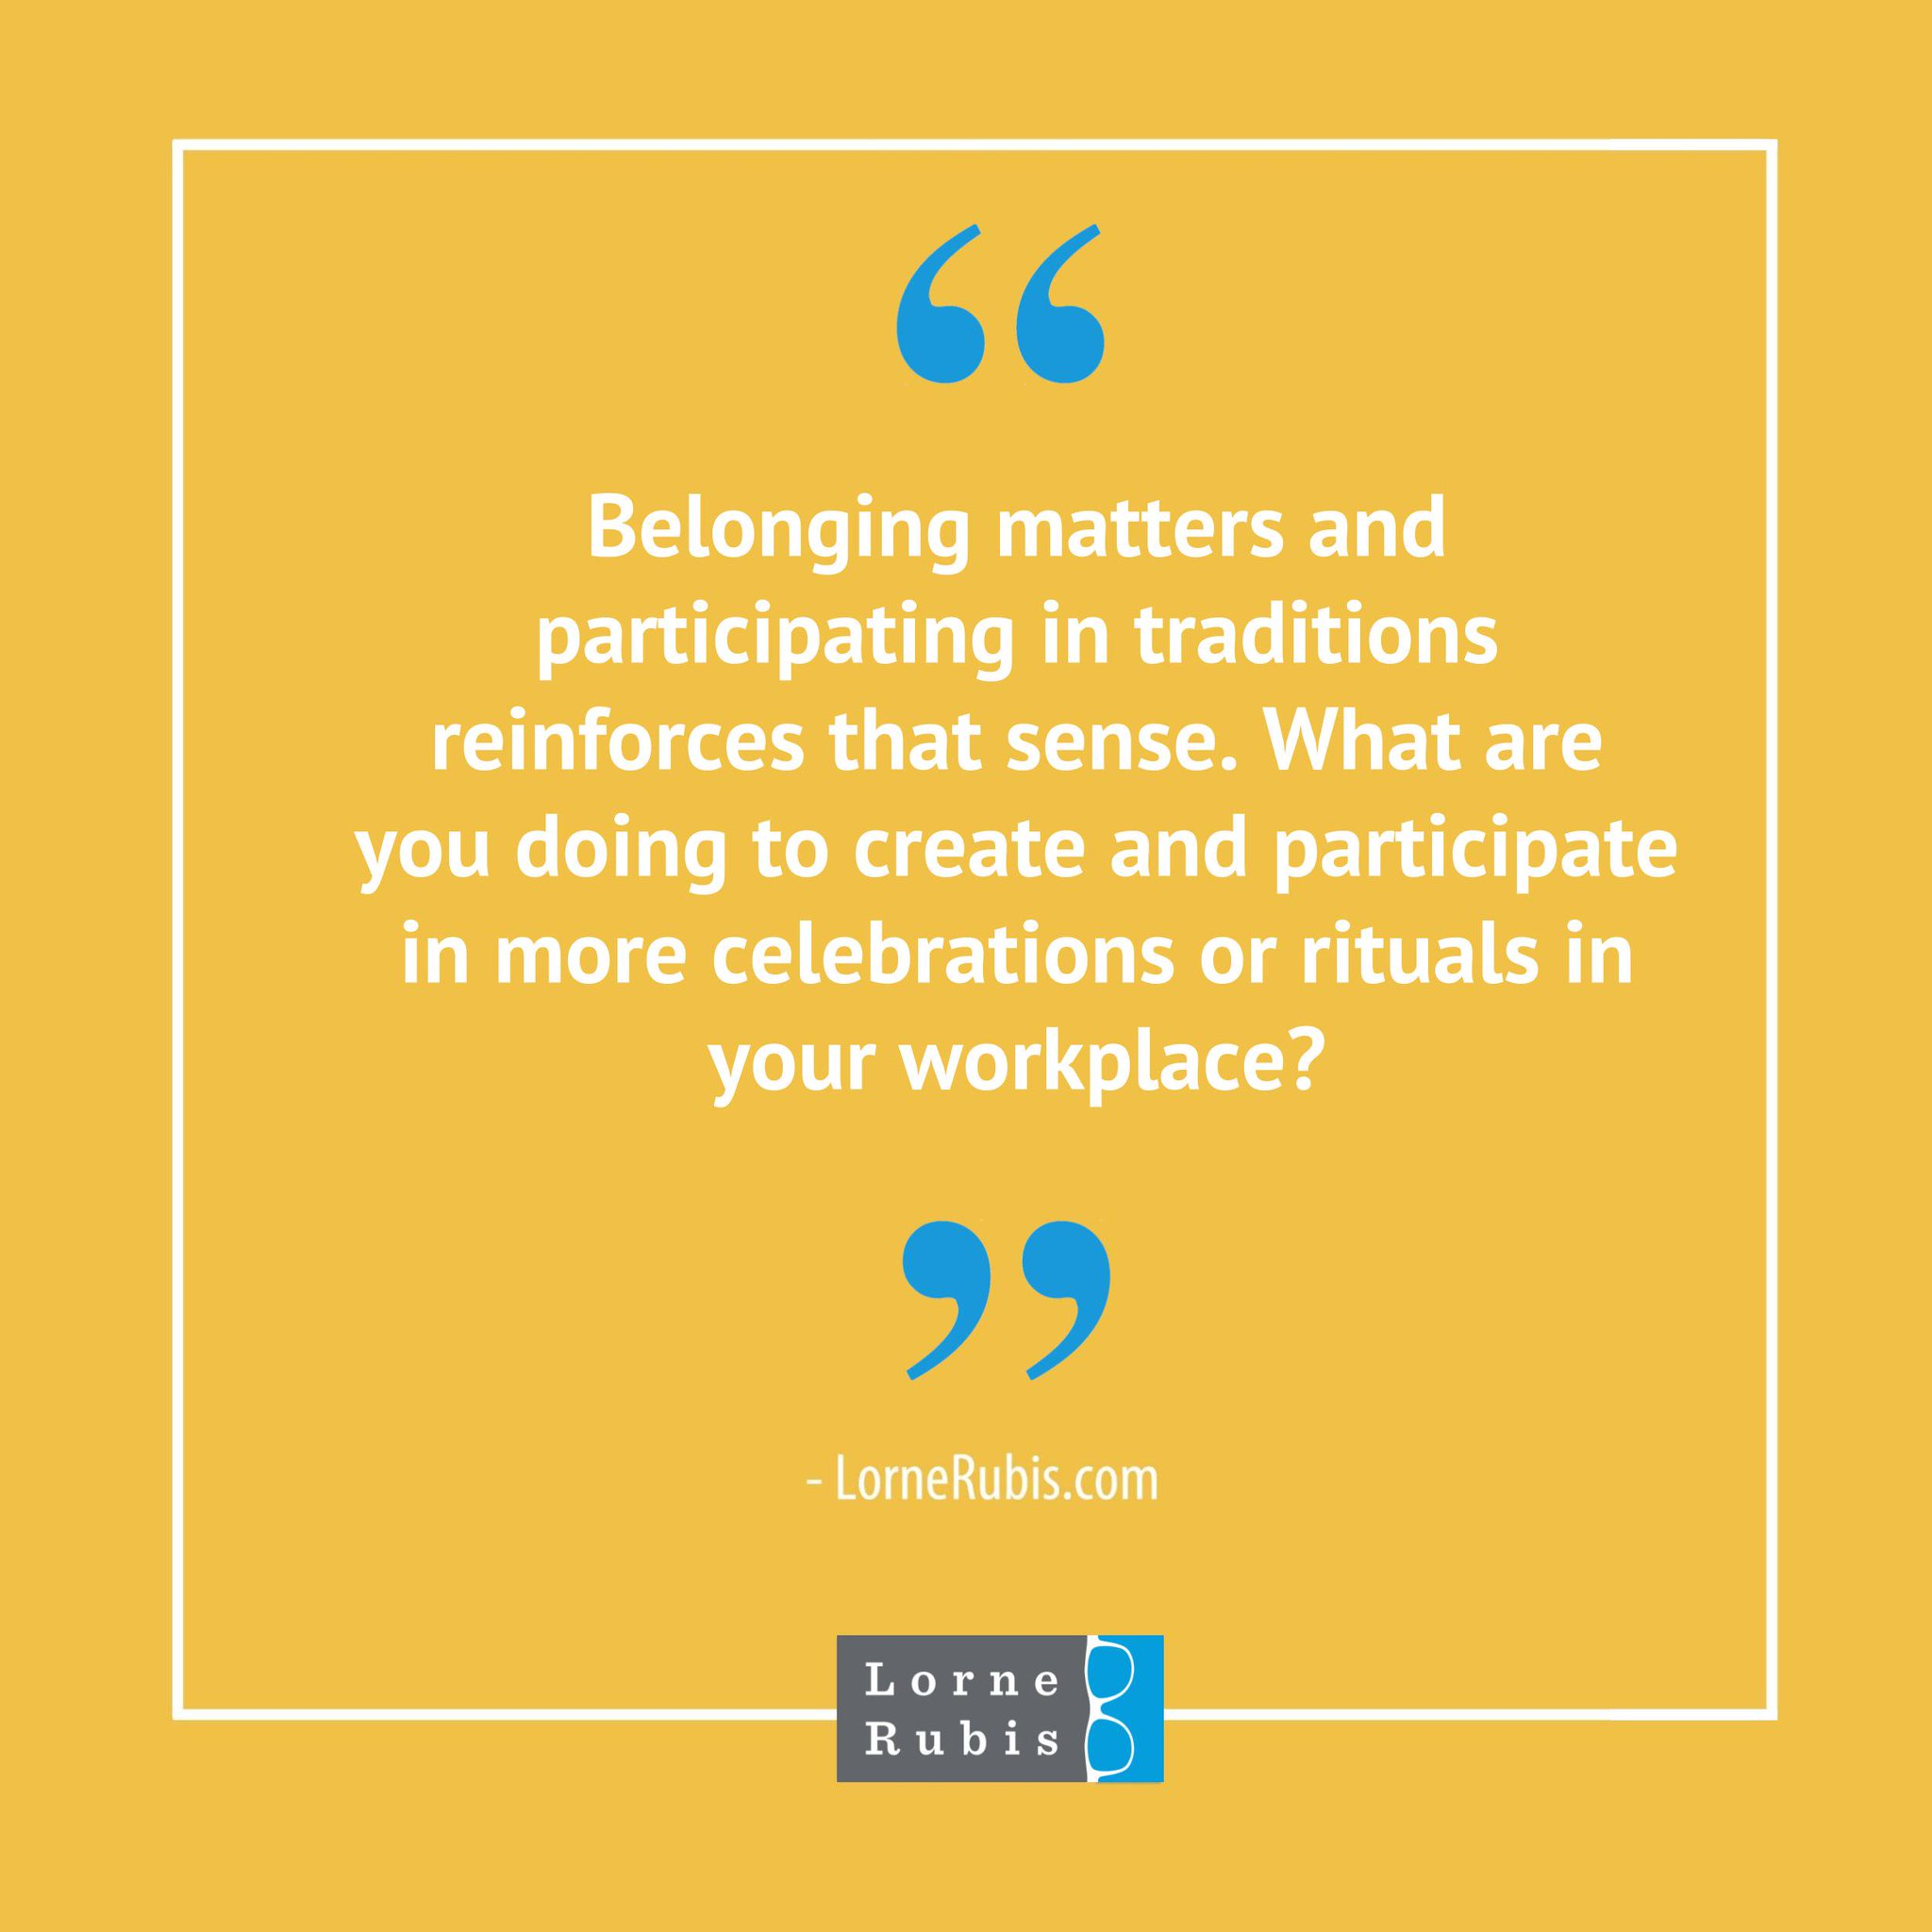 Tomorrow's blog is all about traditions and fun rituals at the workplace. Be sure to check it out when it publishes on Nov. 6. In the meantime, does your office offer any traditions or celebrations that bring joy and laughter to work? #WorkTraditions #FunatWork #CompanyCulture https://t.co/wlkahPdvdX